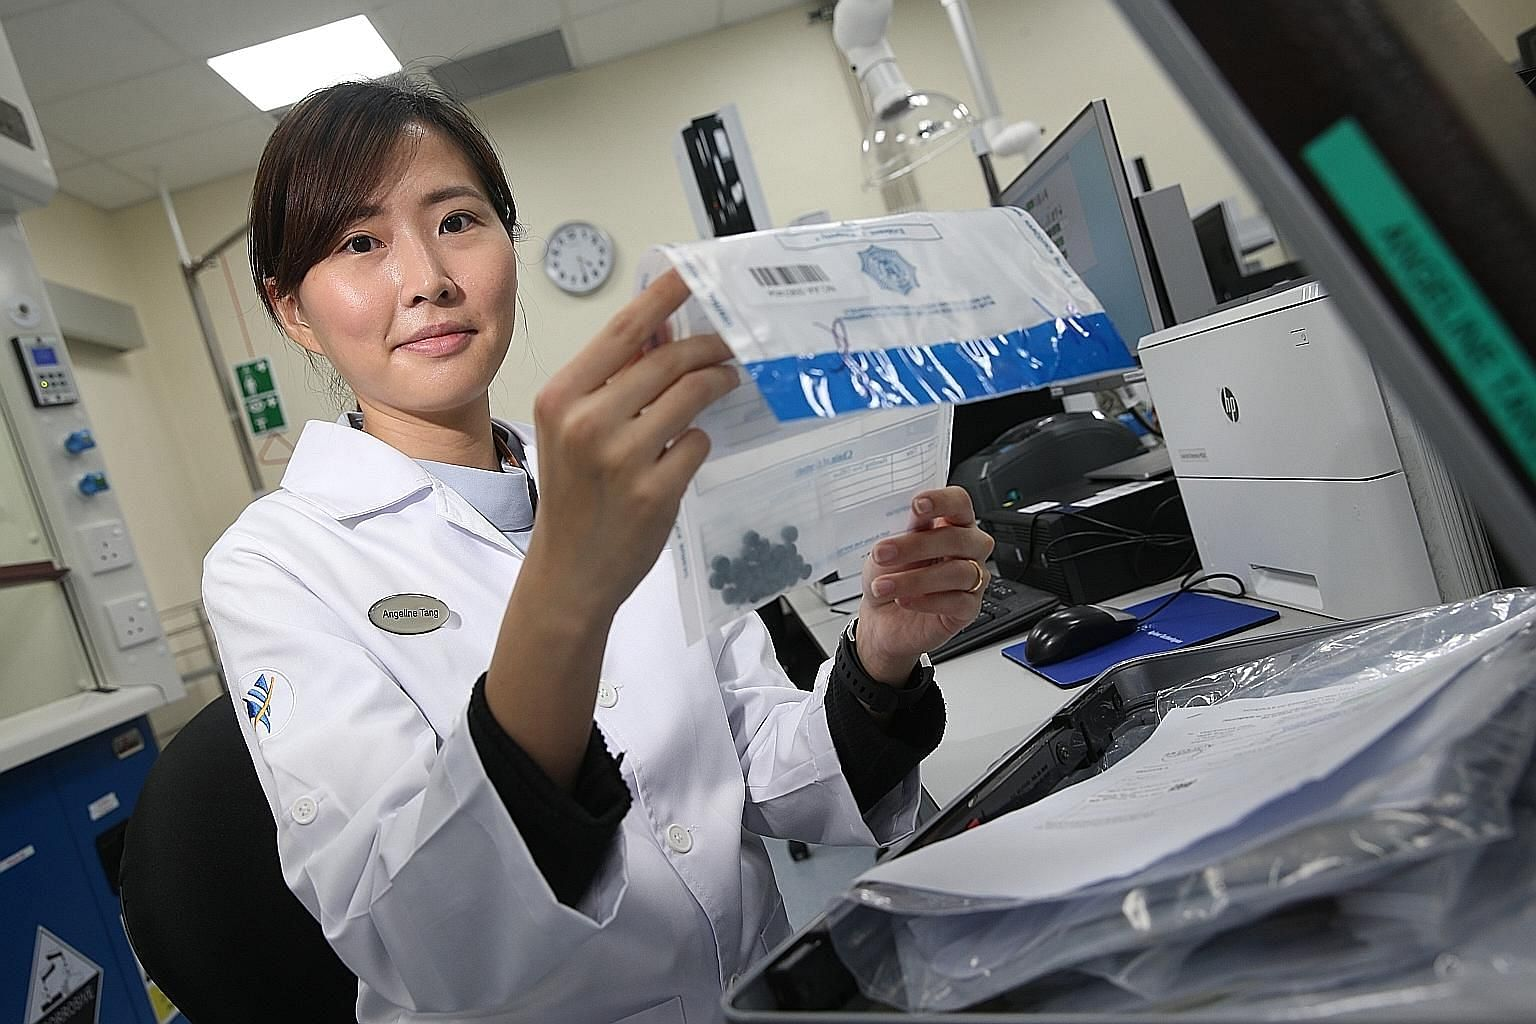 Ms Angeline Tang examining a drug exhibit at the Illicit Drugs Laboratory. Every day, about 50 laboratory staff decode the chemical make-up of seized drugs that they receive from CNB.